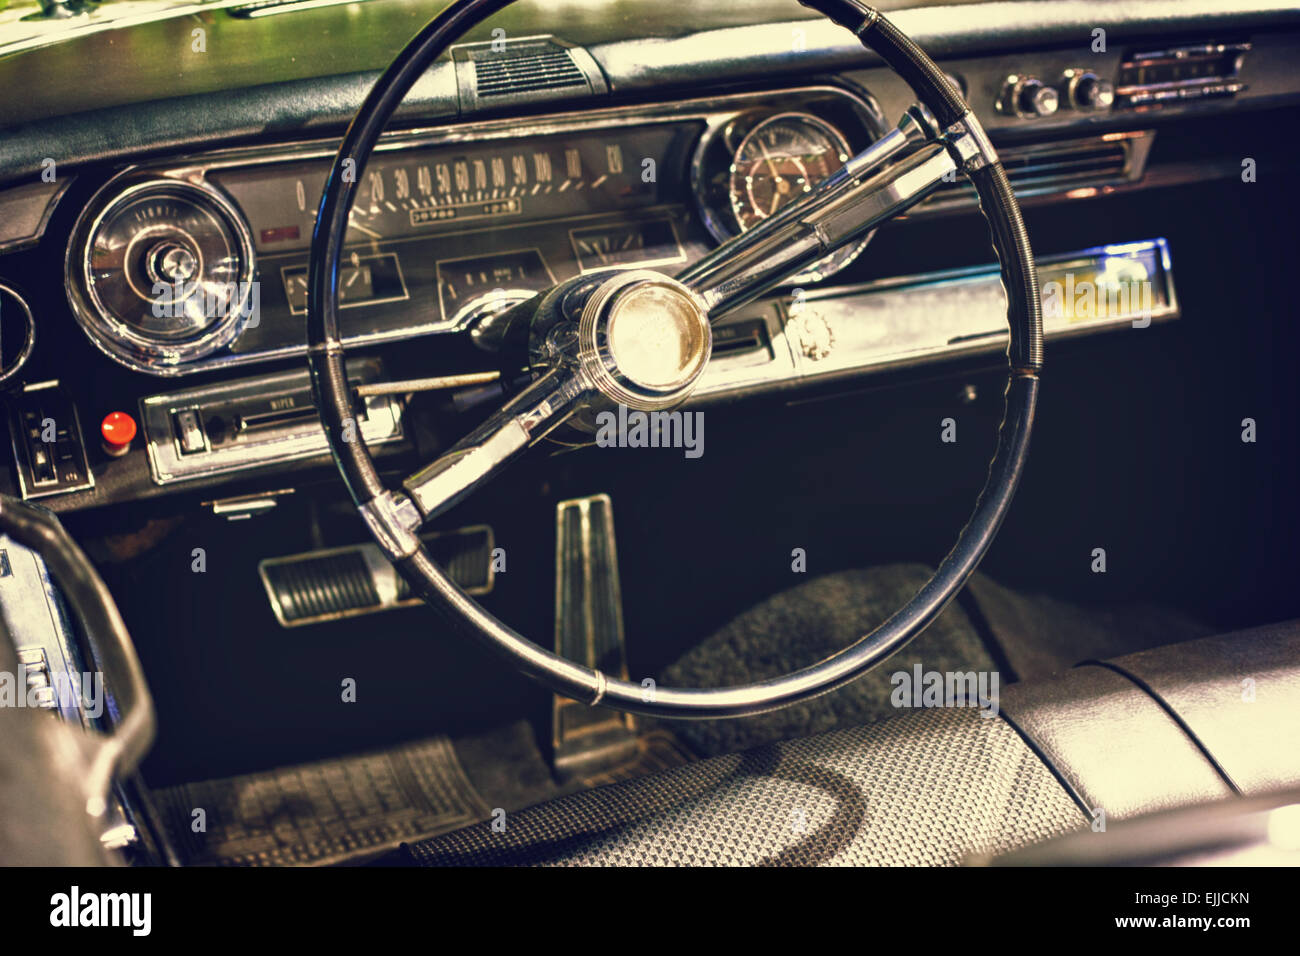 Old Vintage Classic Black Car Steering Wheel And Dashboard Stock